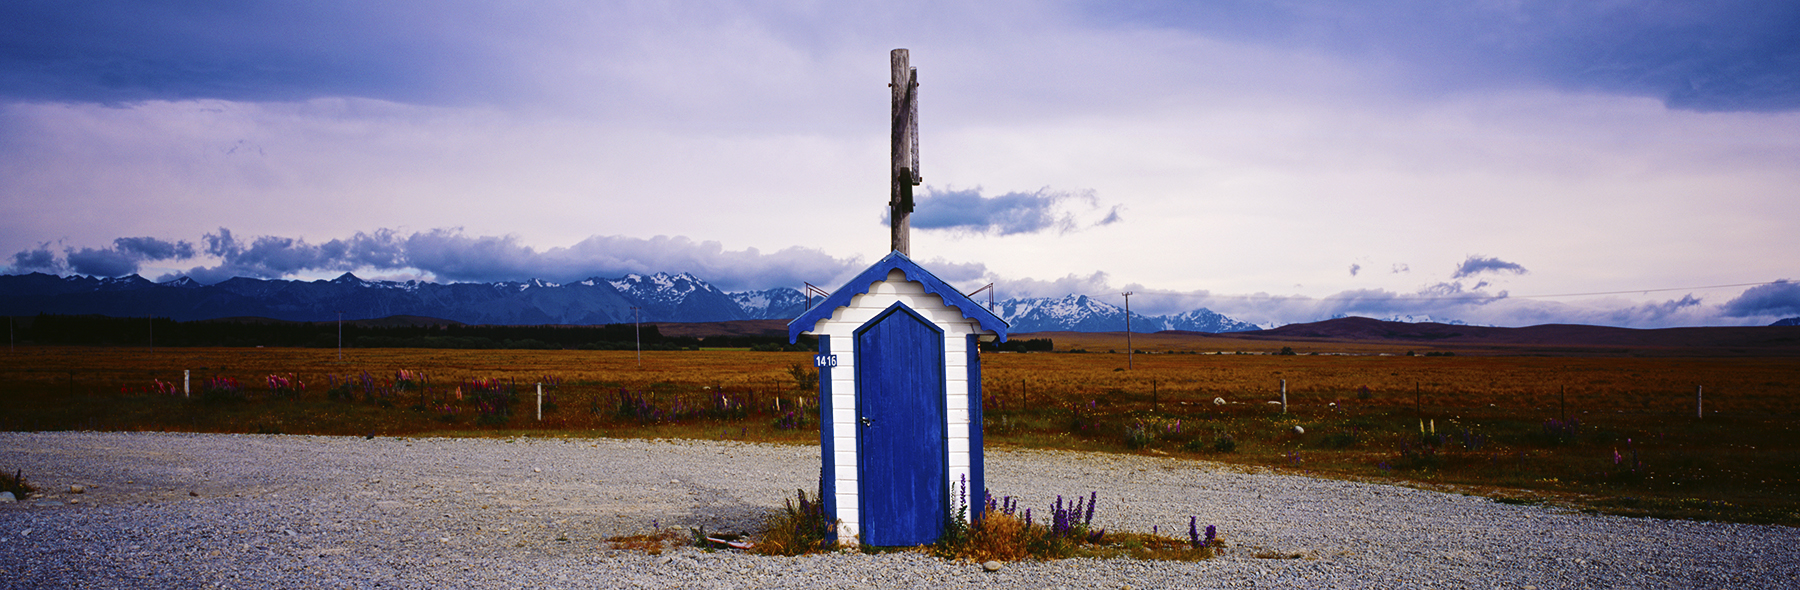 Blue Hut on SH8, Mackenzie District, New Zealand. A Limited Edition Fine Art Landscape Photograph by Richard Hume